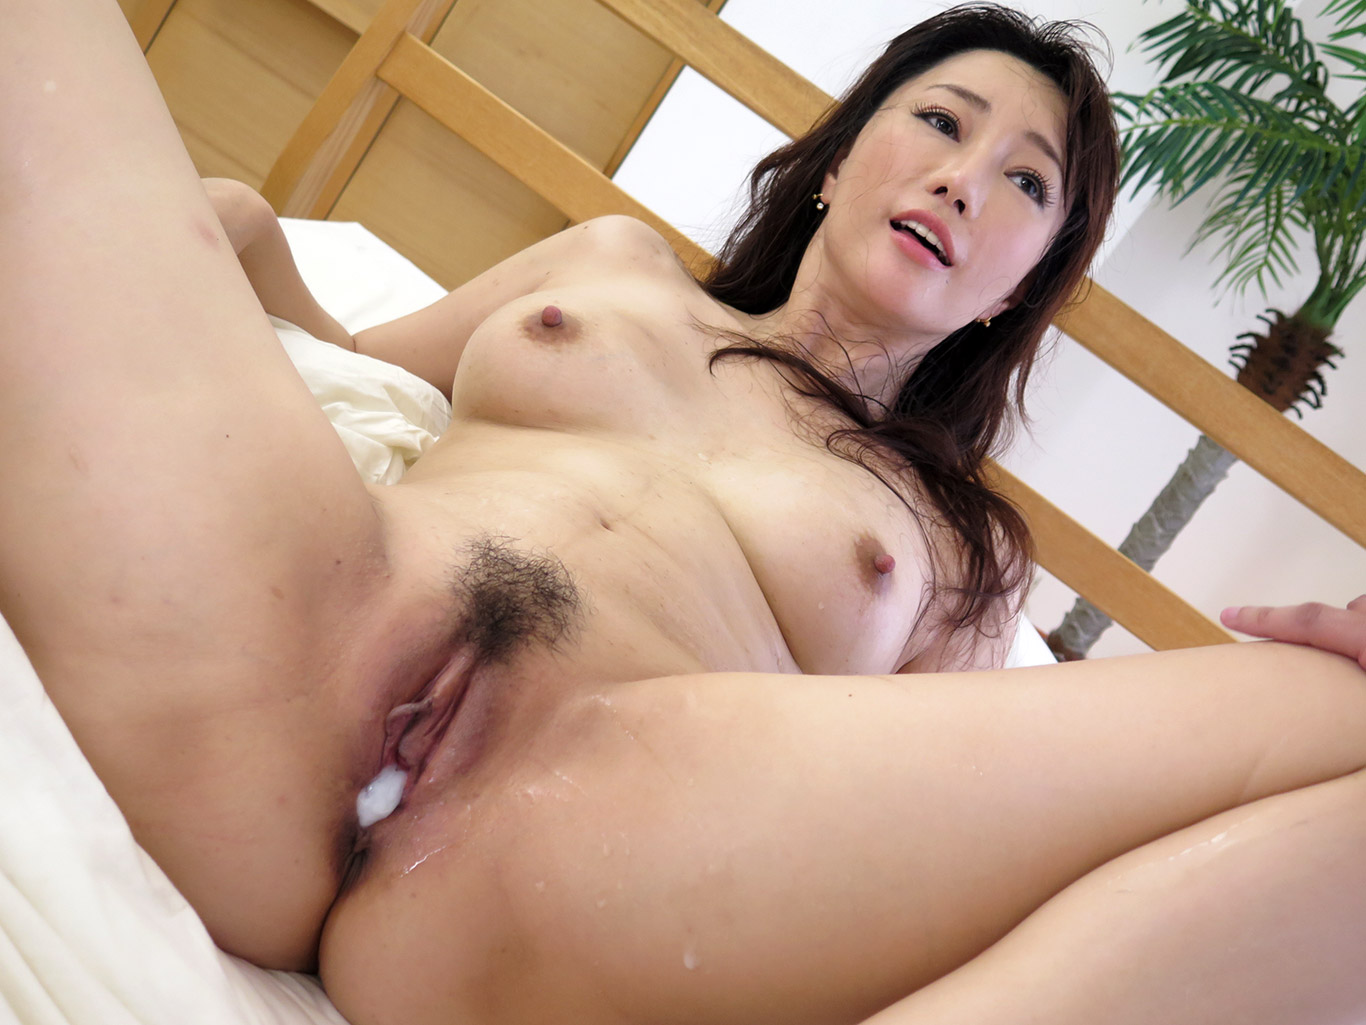 Hot Creampie In Freshly Shaved Japanese Teen Pussy